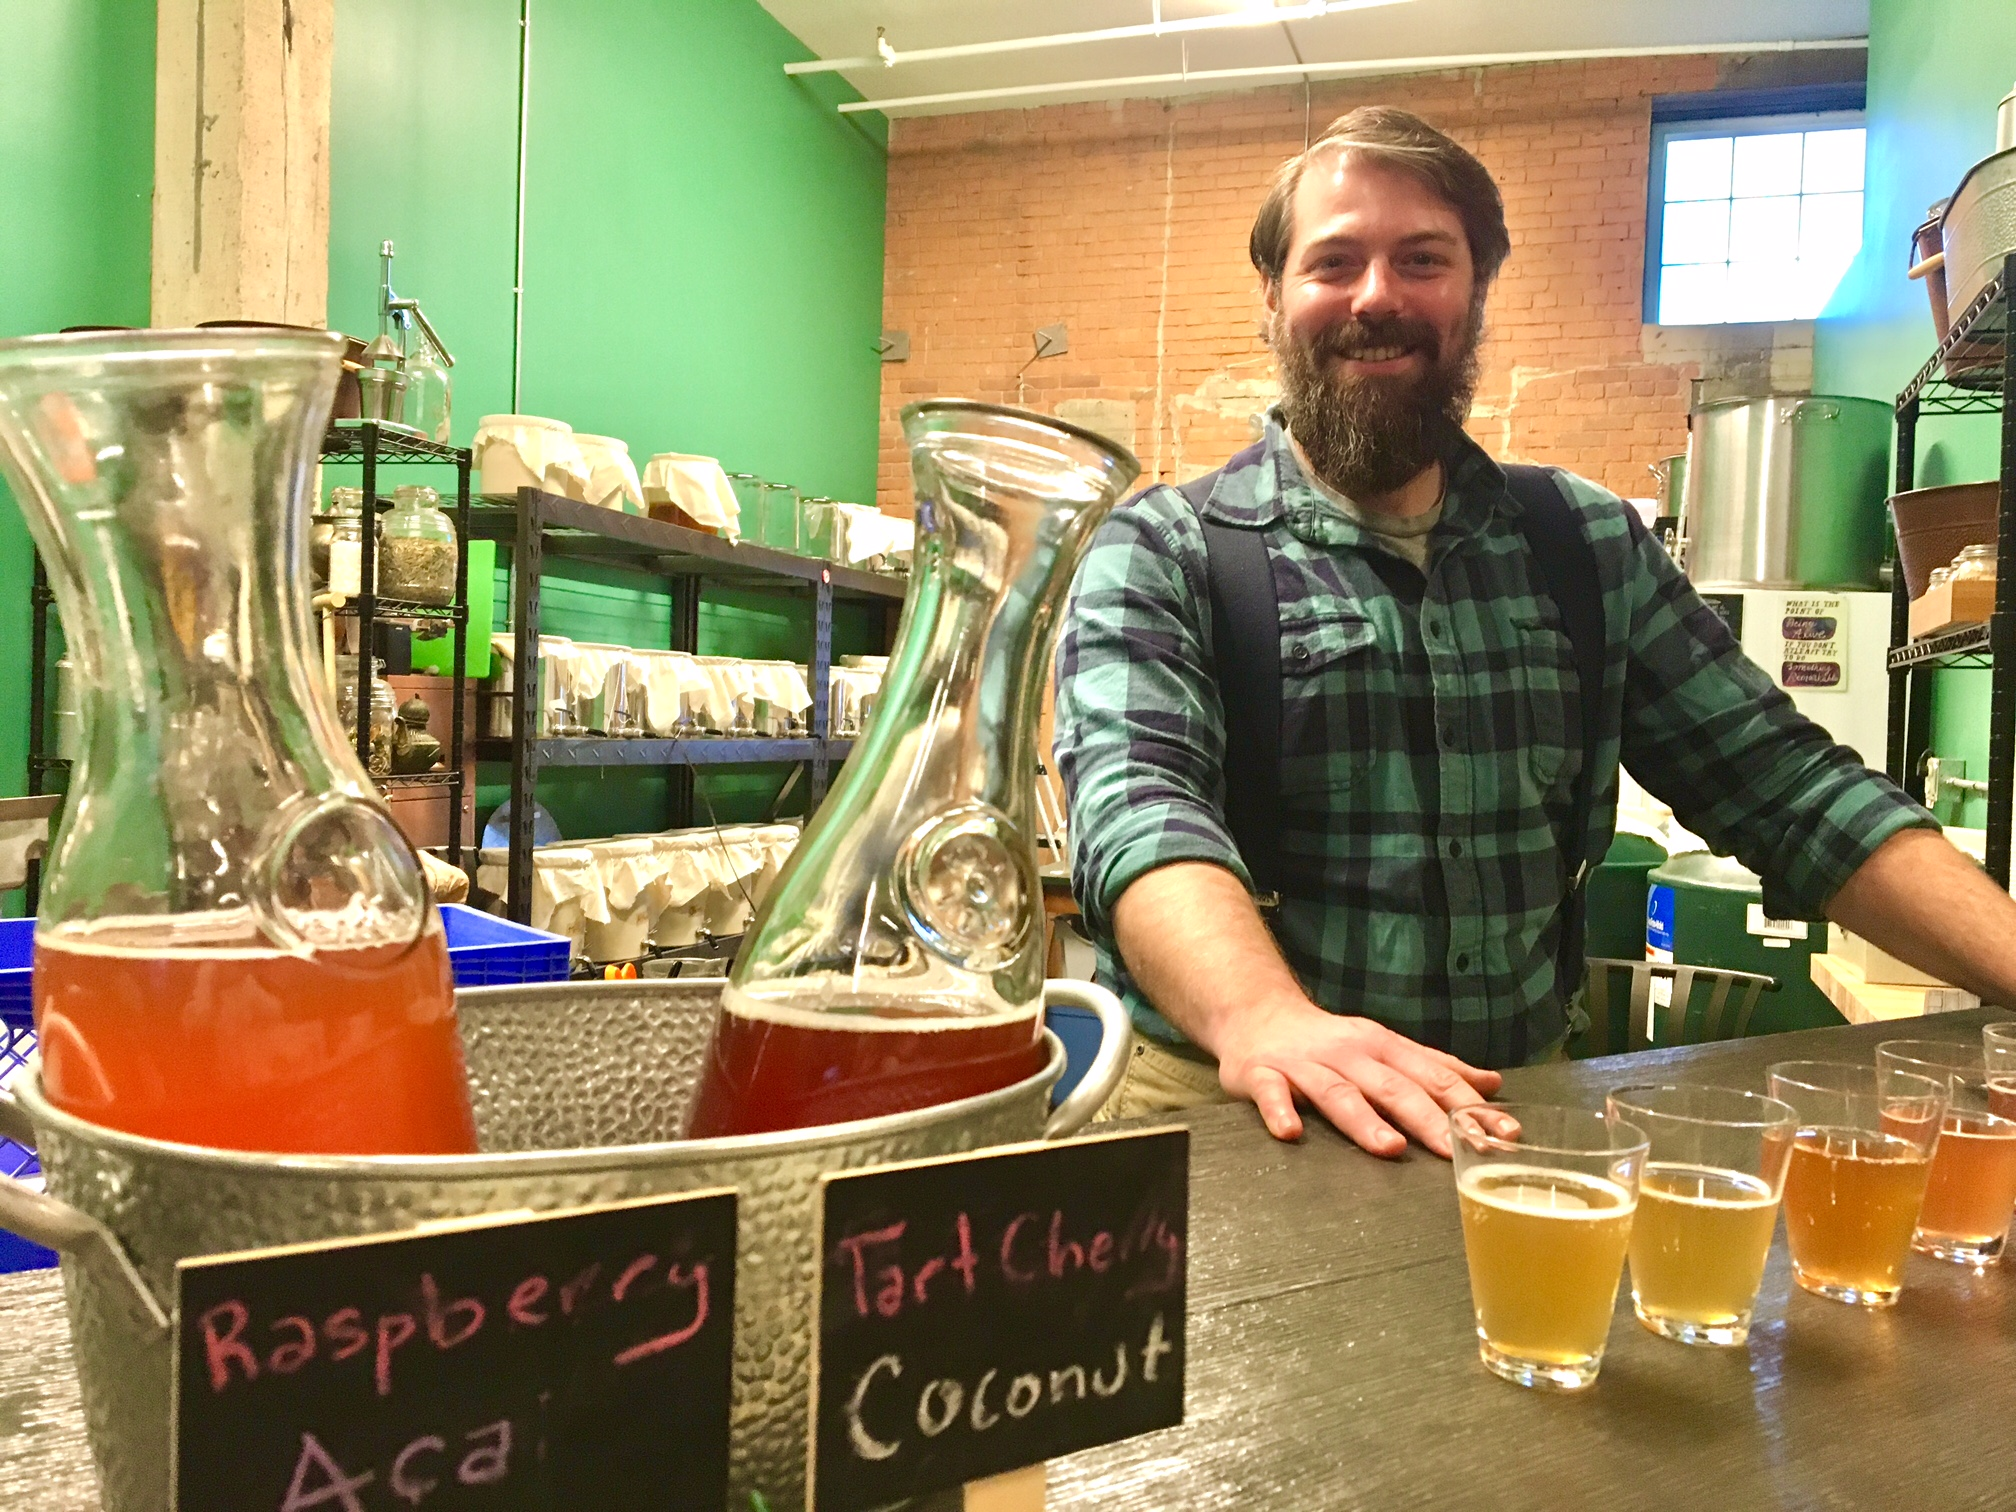 """Some of our customers include people with autoimmune conditions like rheumatoid arthritis or fibromyalgia. They tell us it seems to have a positive effect,"" says Andrew Bannister, co-owner of Snowy Owl Kombucha in The Barrel Factory. (Scott Scanlon/Buffalo News)"